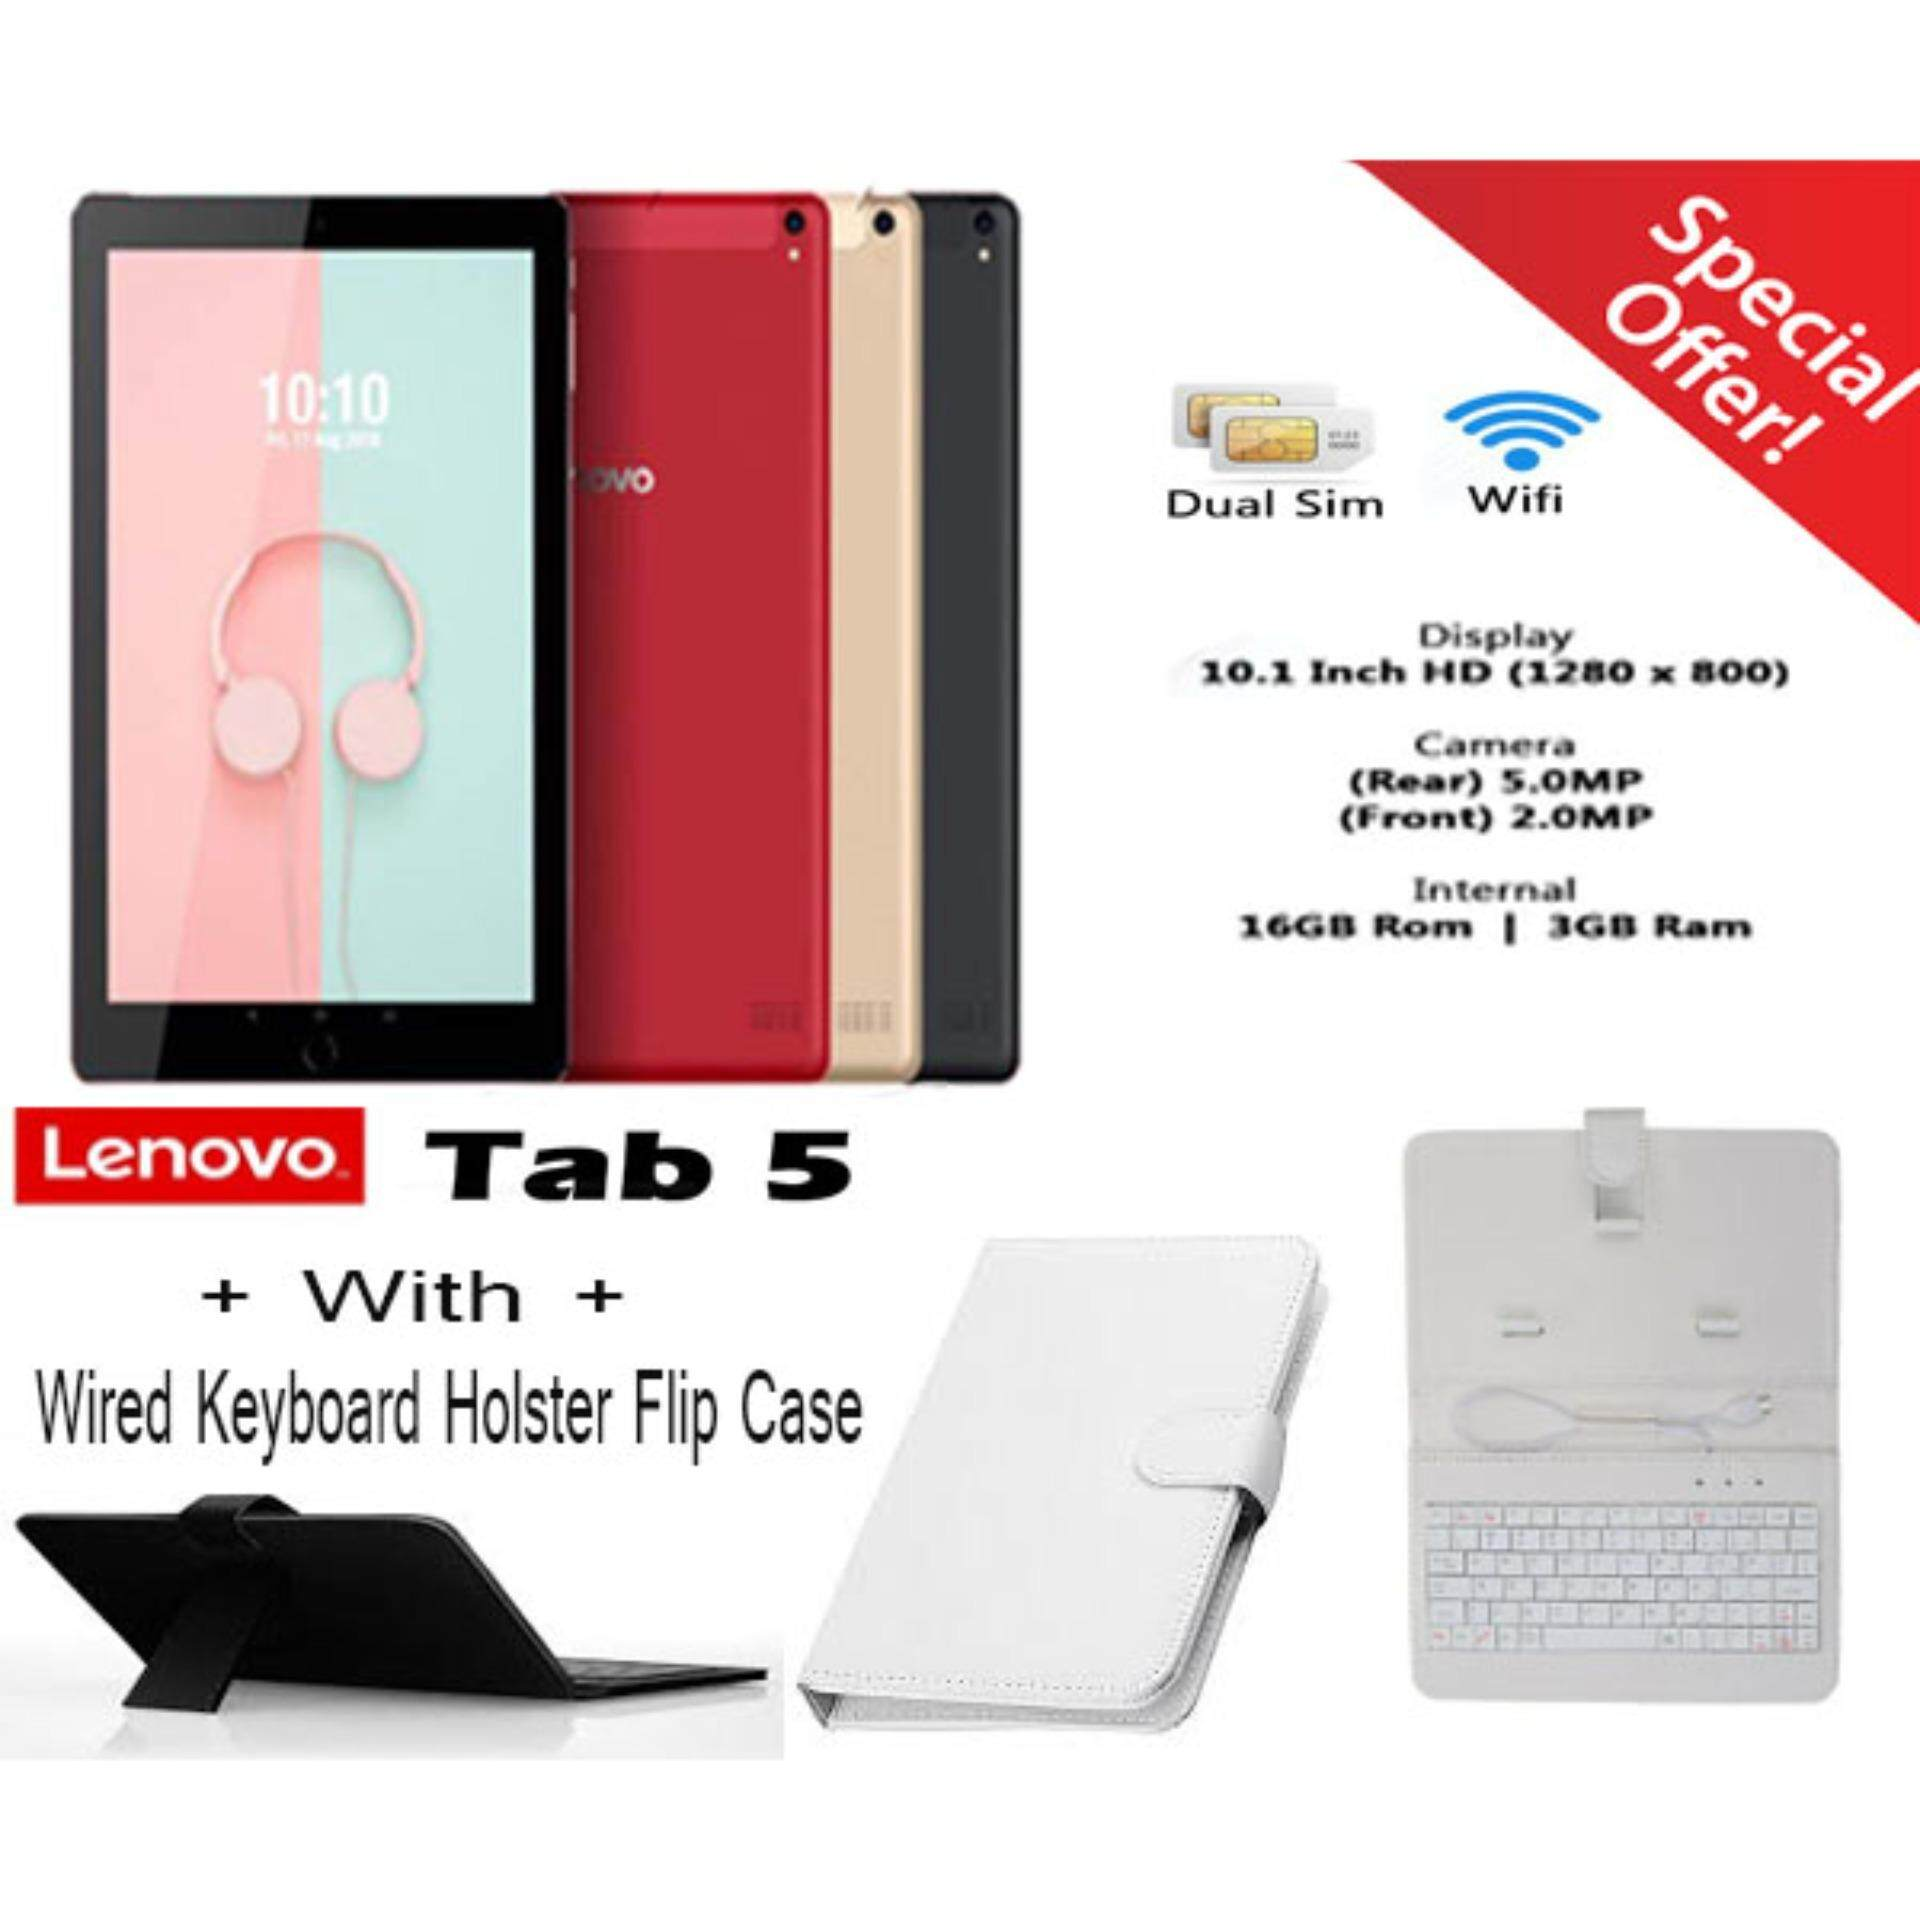 Ready Stock_ Lenovo Tab 5 10 1 Dual Sim WiFi Tablet With Wired Keyboard  Holder